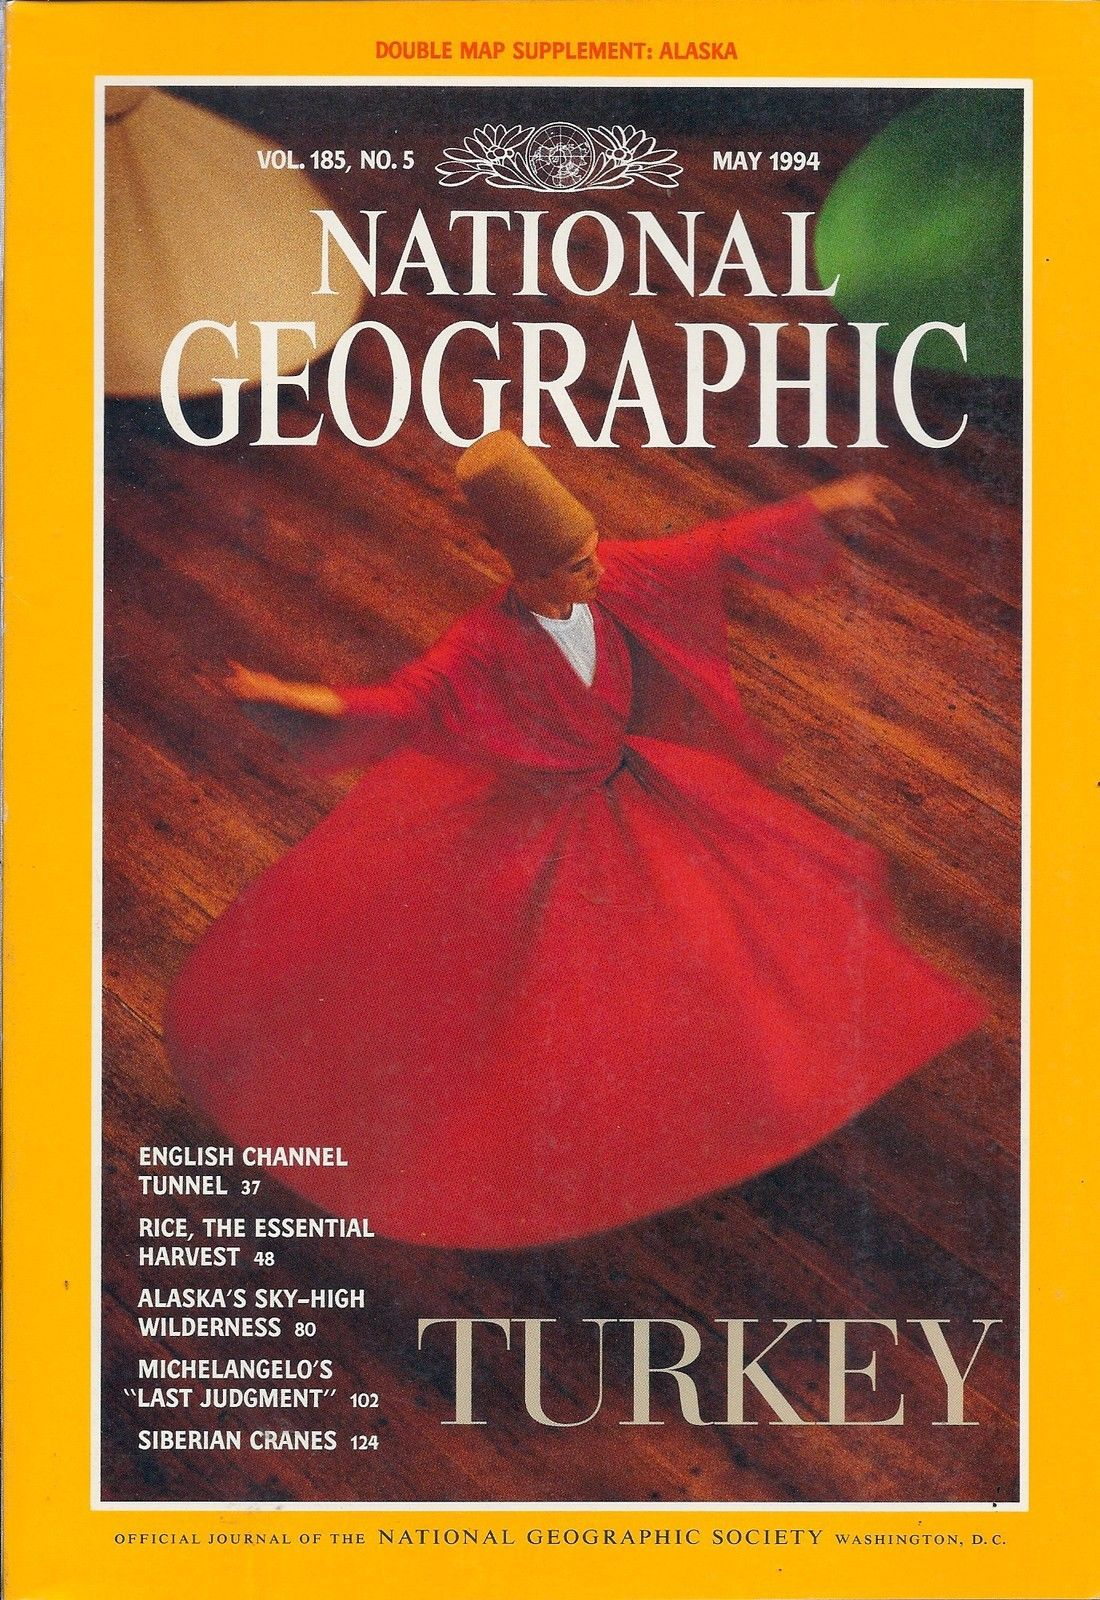 Primary image for National Geographic Magazine May 1994 Supplement Not Included